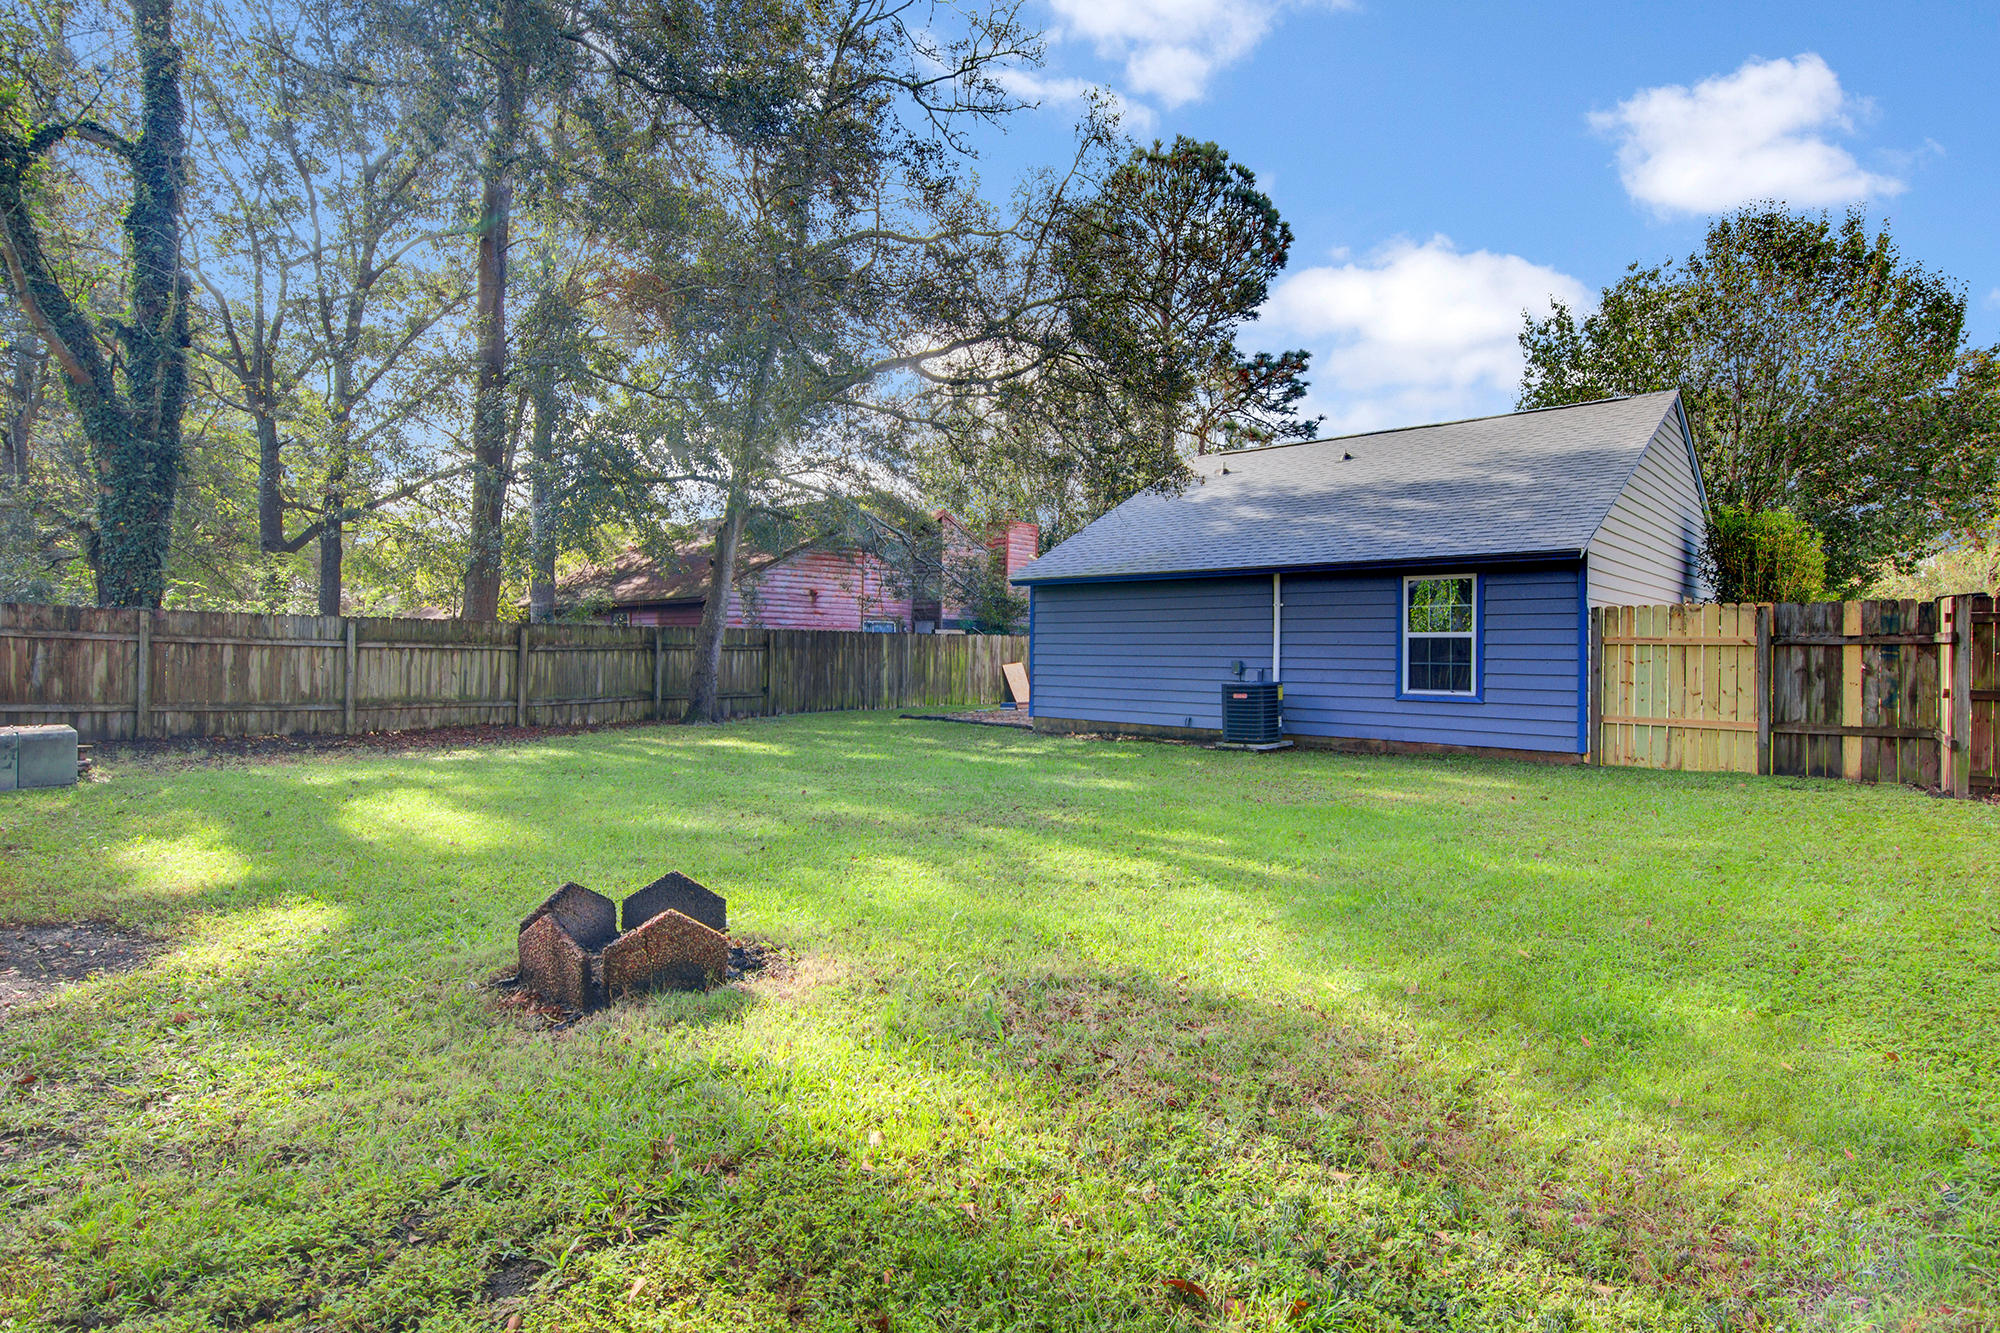 Photo of 106 Coventry Rd, Summerville, SC 29483